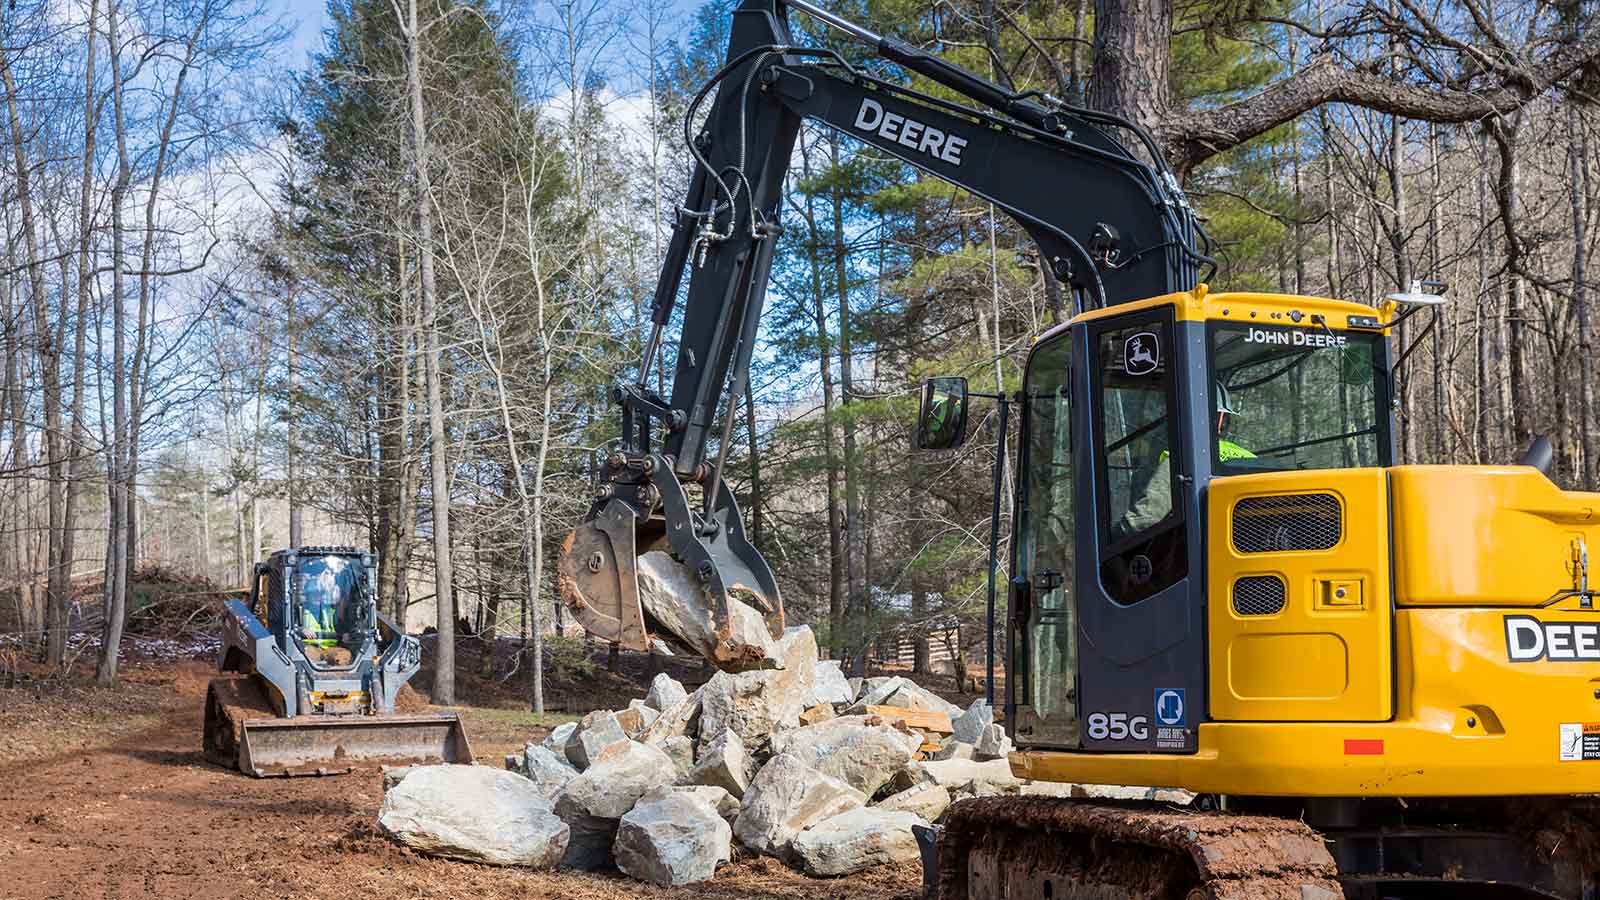 A John Deere 85G Mid-Size Excavator moves rocks with the assistance of a John Deere 333G Compact Track Loader